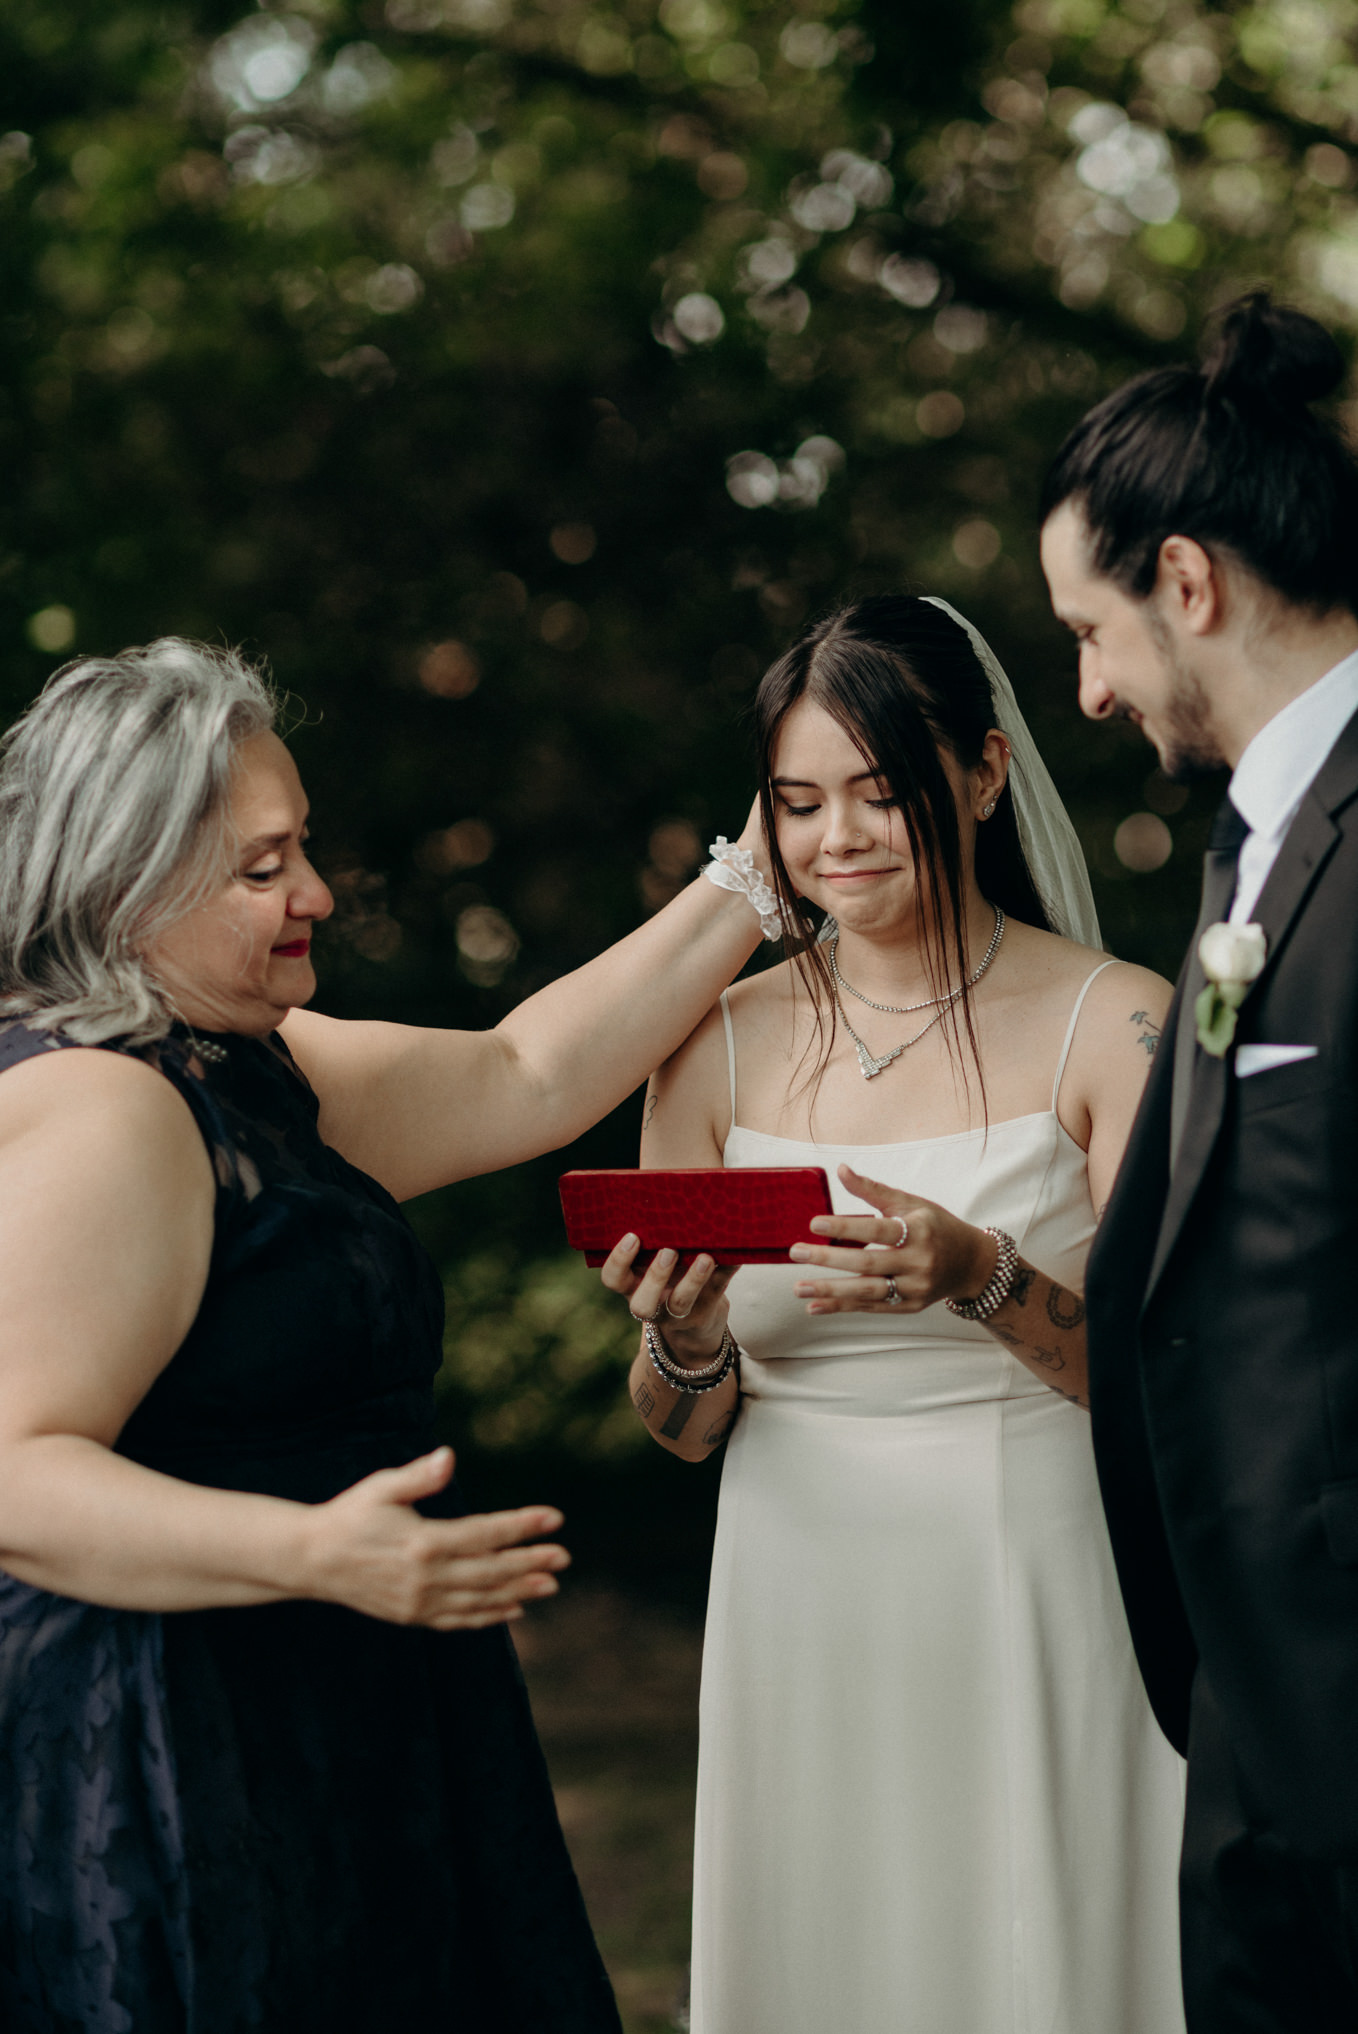 mother of groom giving gift to bride